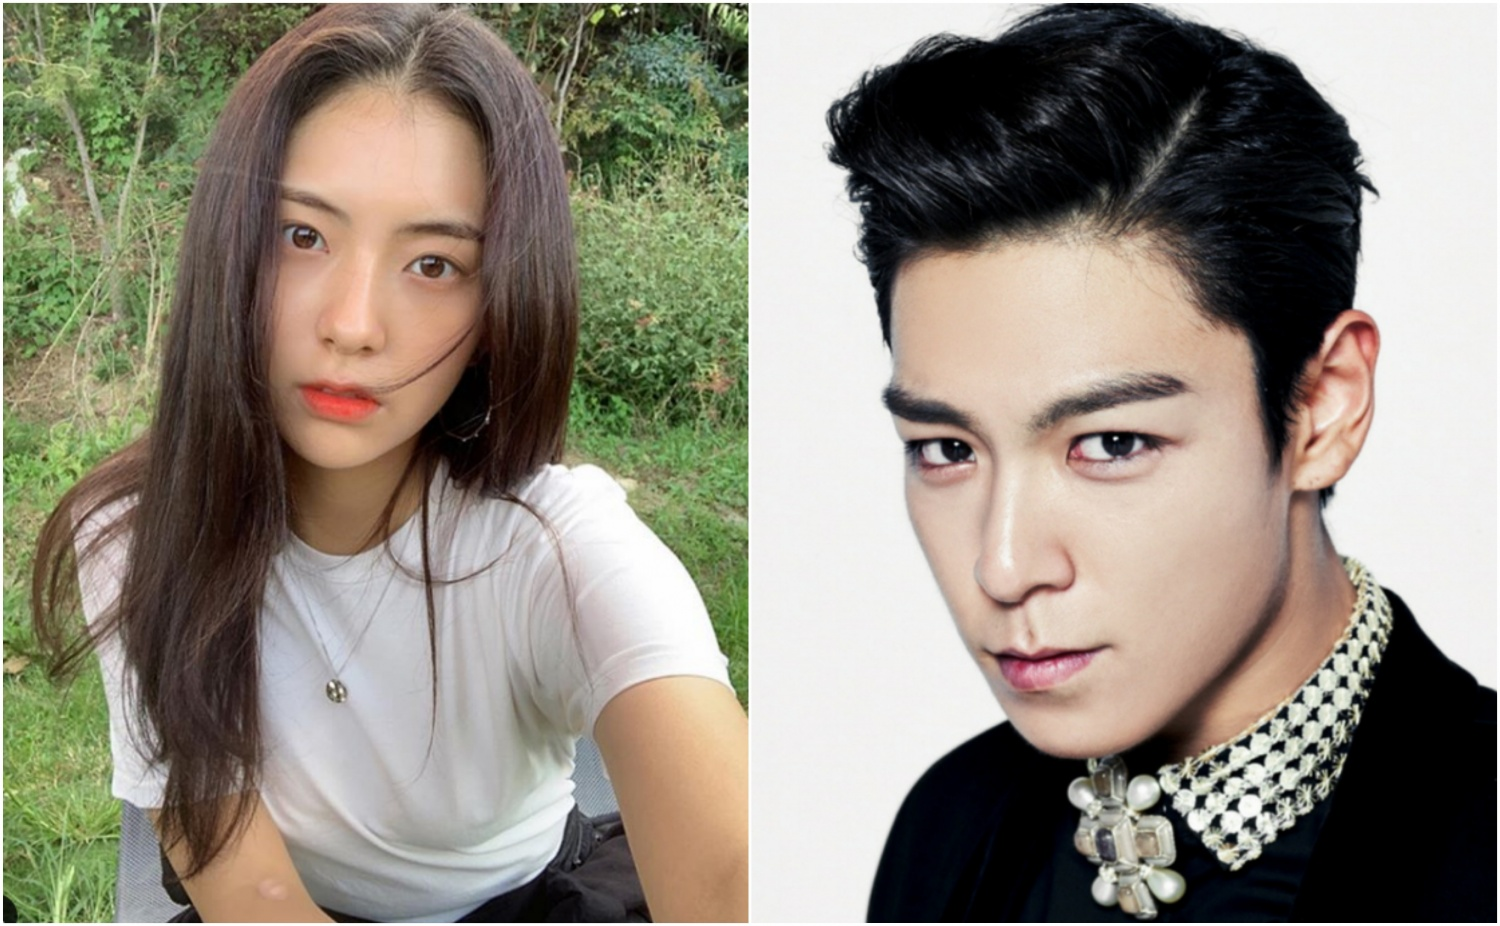 BIGBANG T.O.P Rumored To Be In A Relationship With SM C&C's Kim Gavin |  KpopStarz